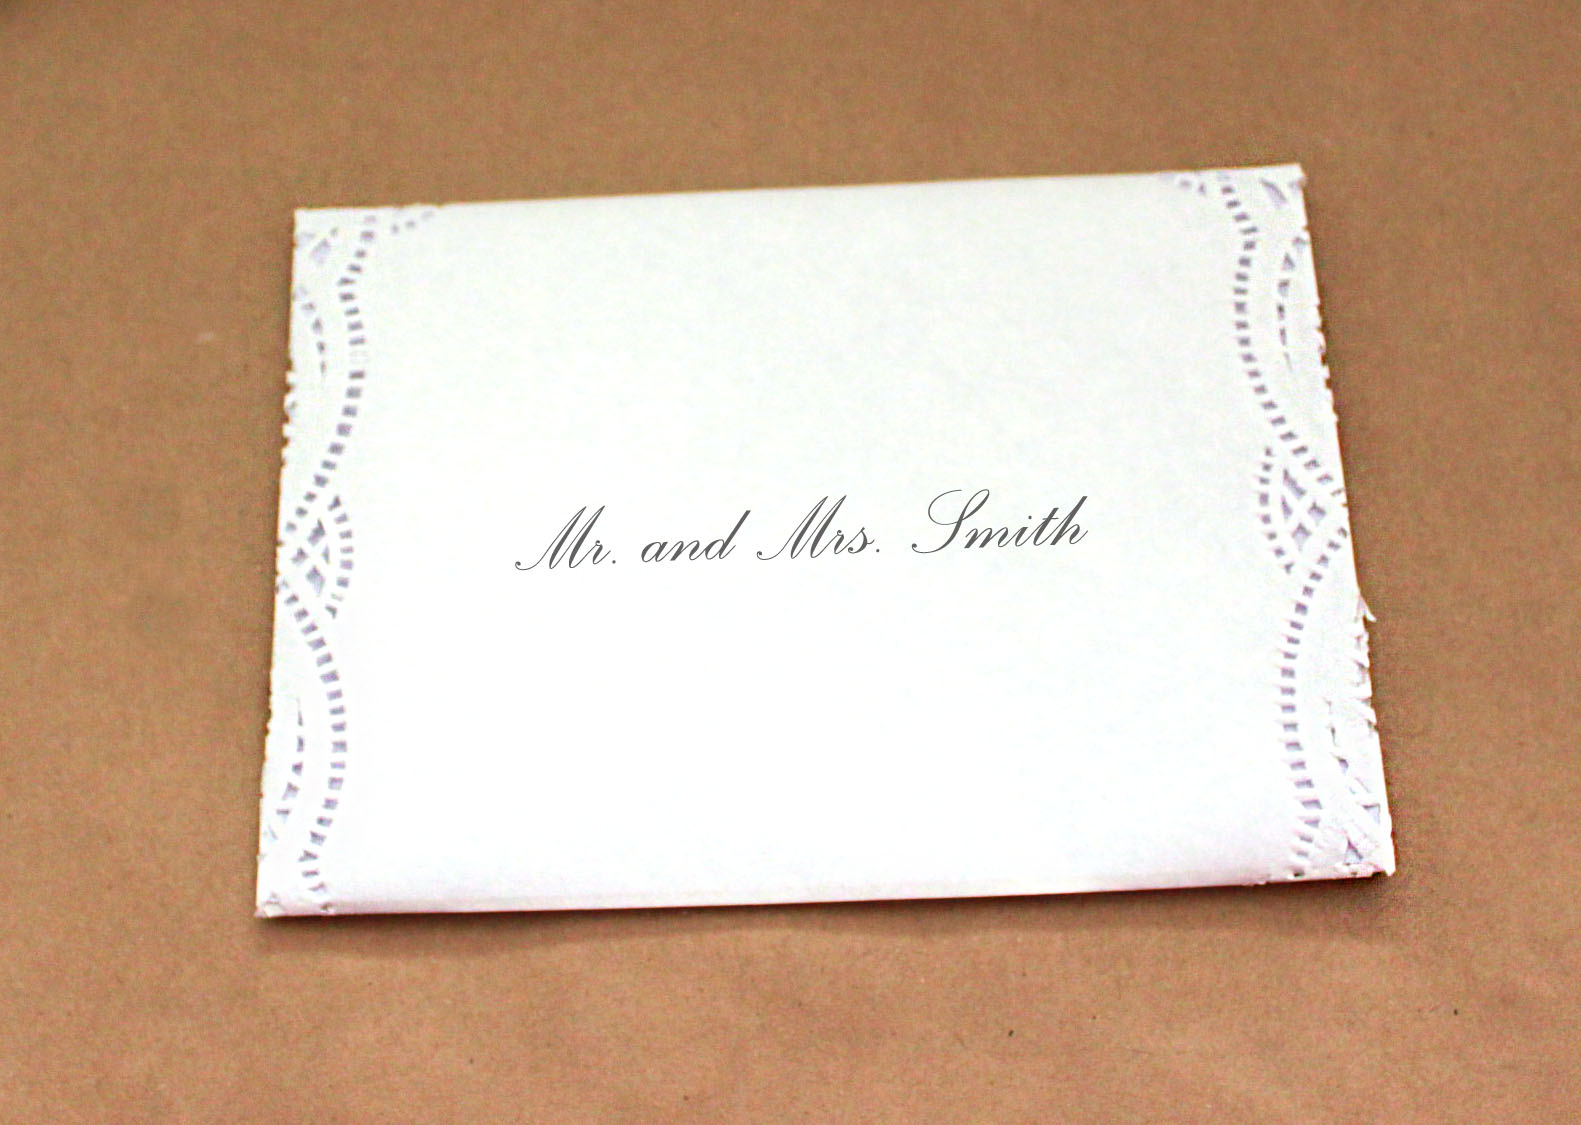 Addressing A Wedding Gift Card : ... to help fold the rest of those envelopes and start addressing them